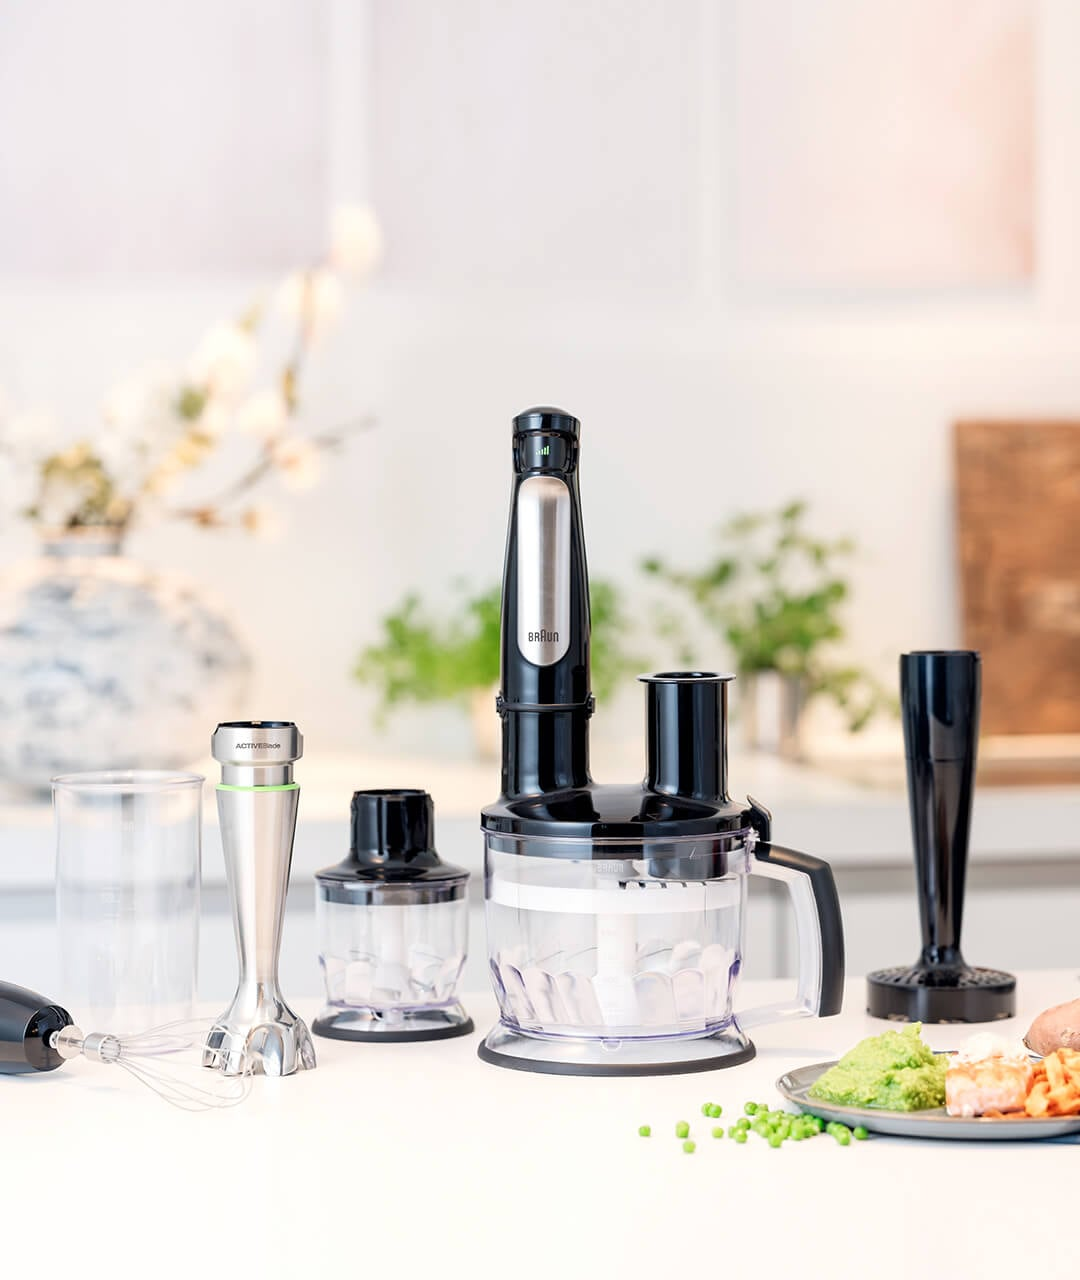 Braun Hand blenders attachments